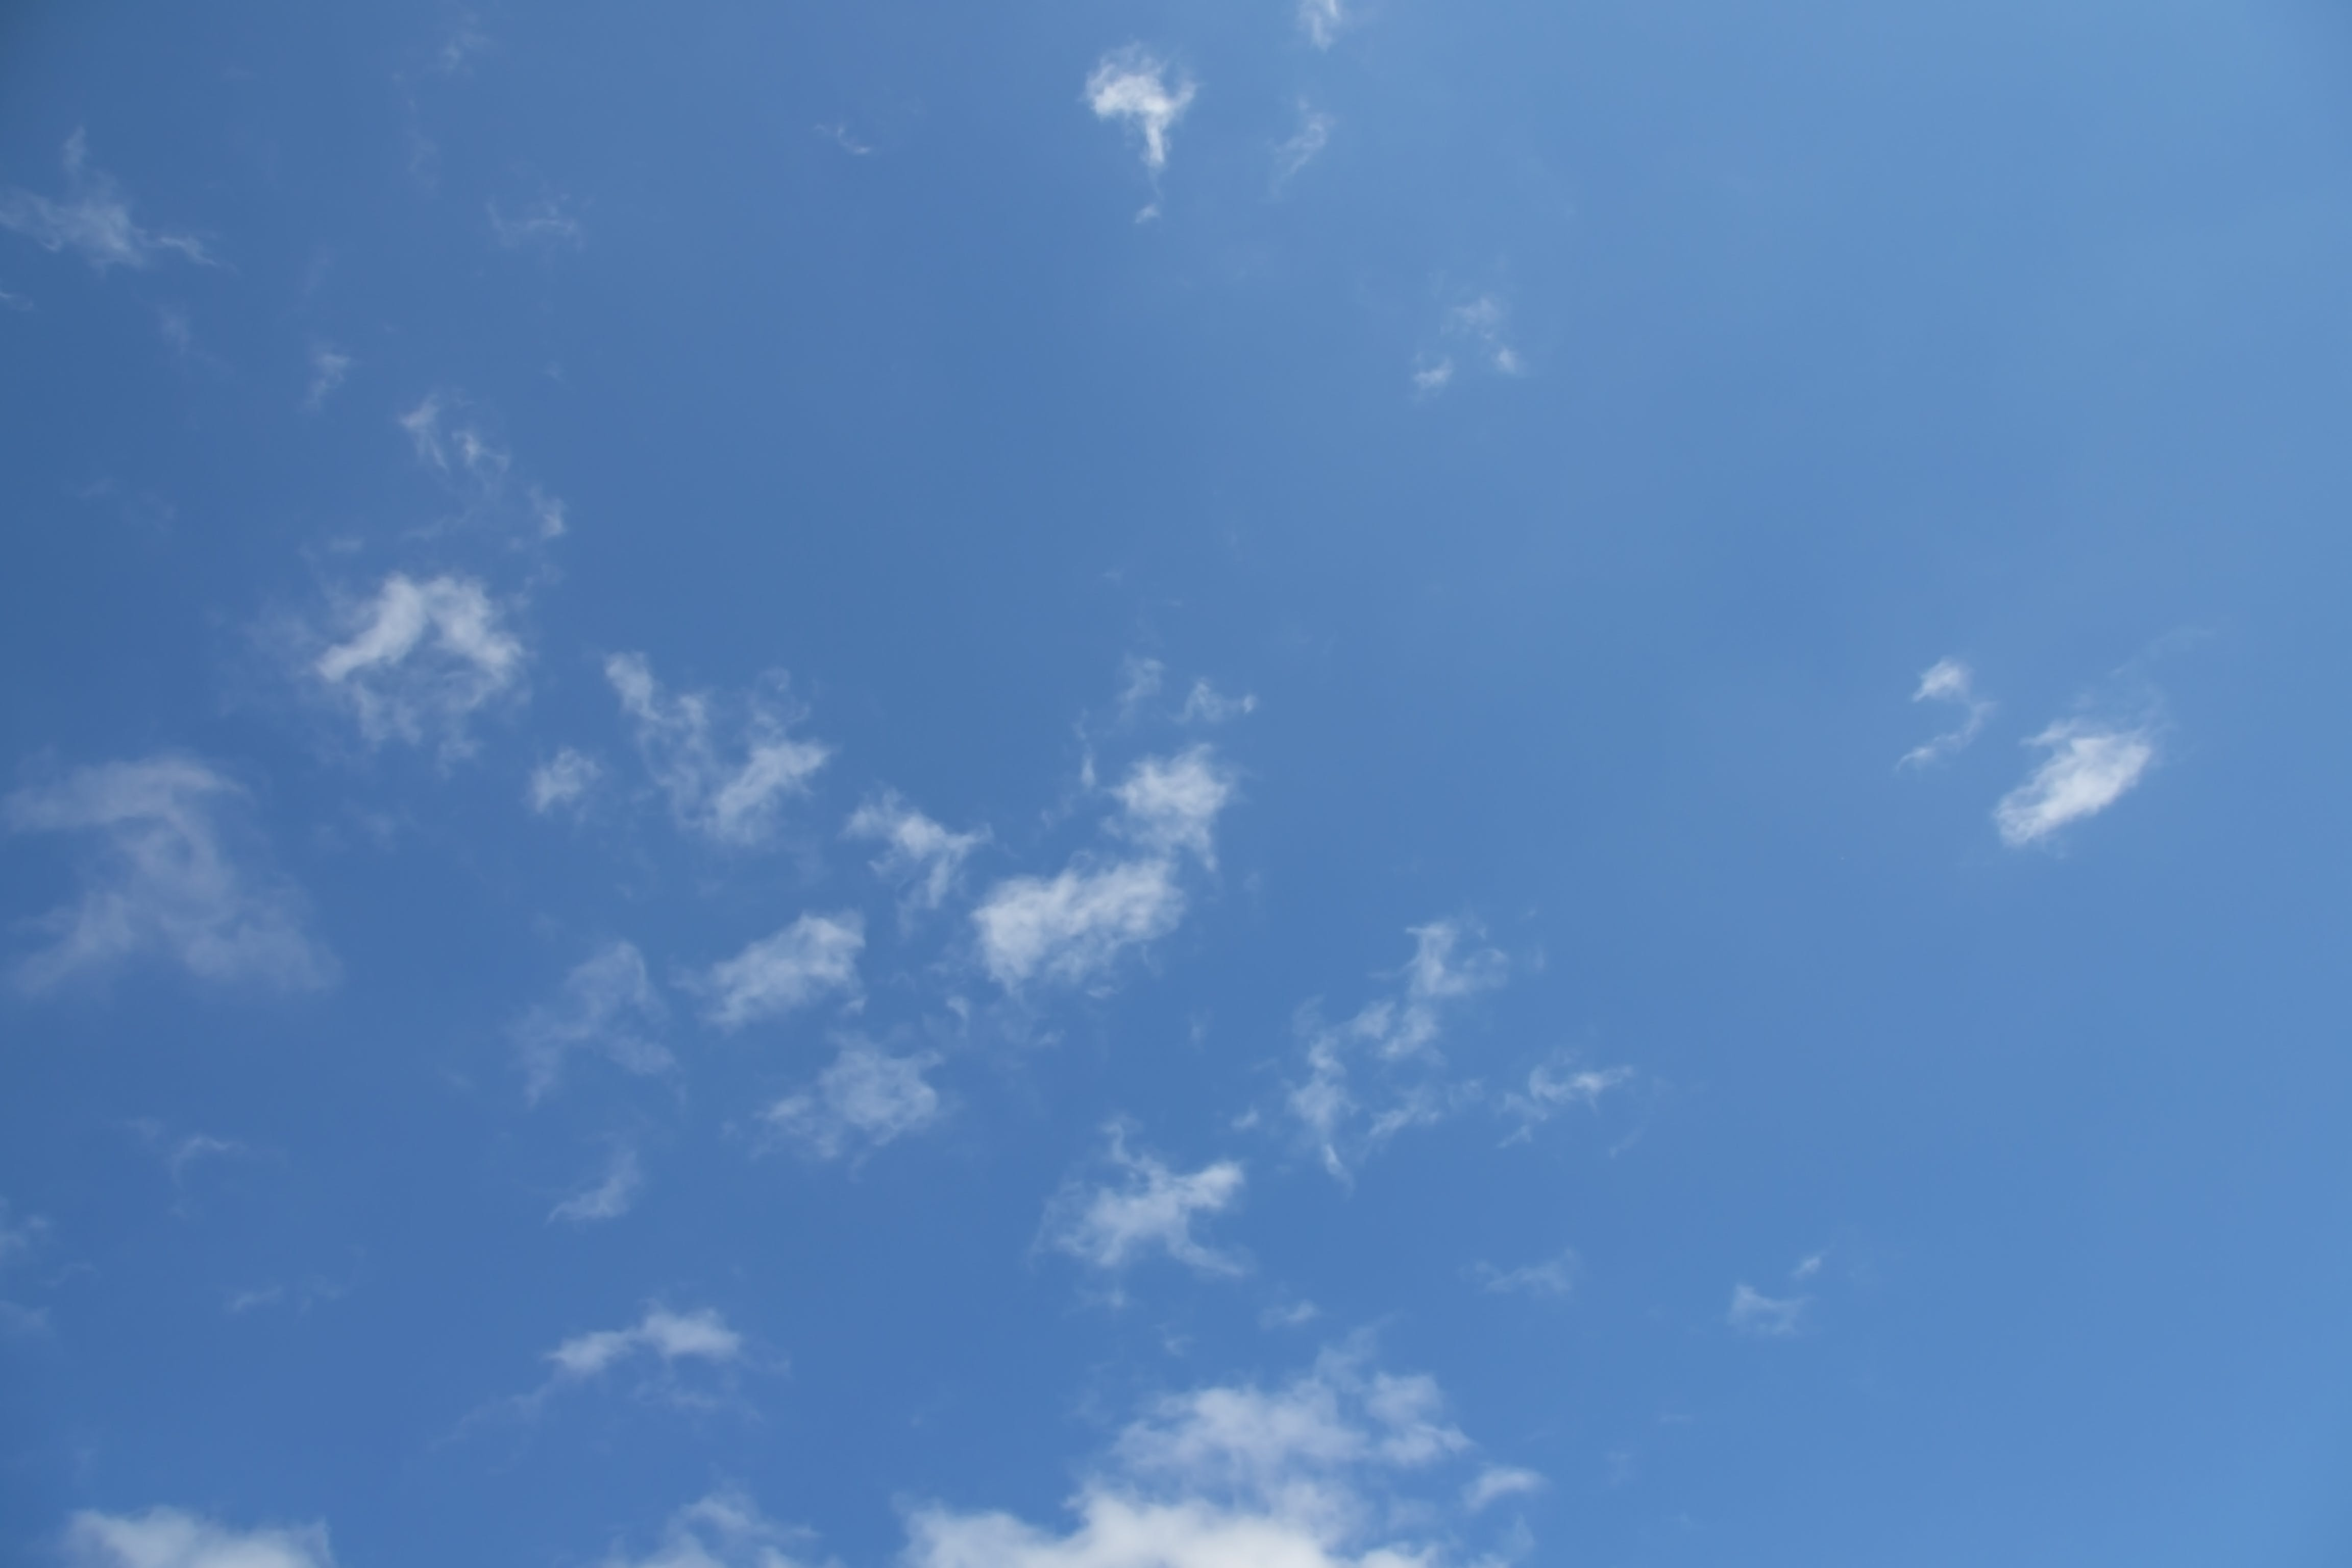 Free stock photo of nature, sky, clouds, blue